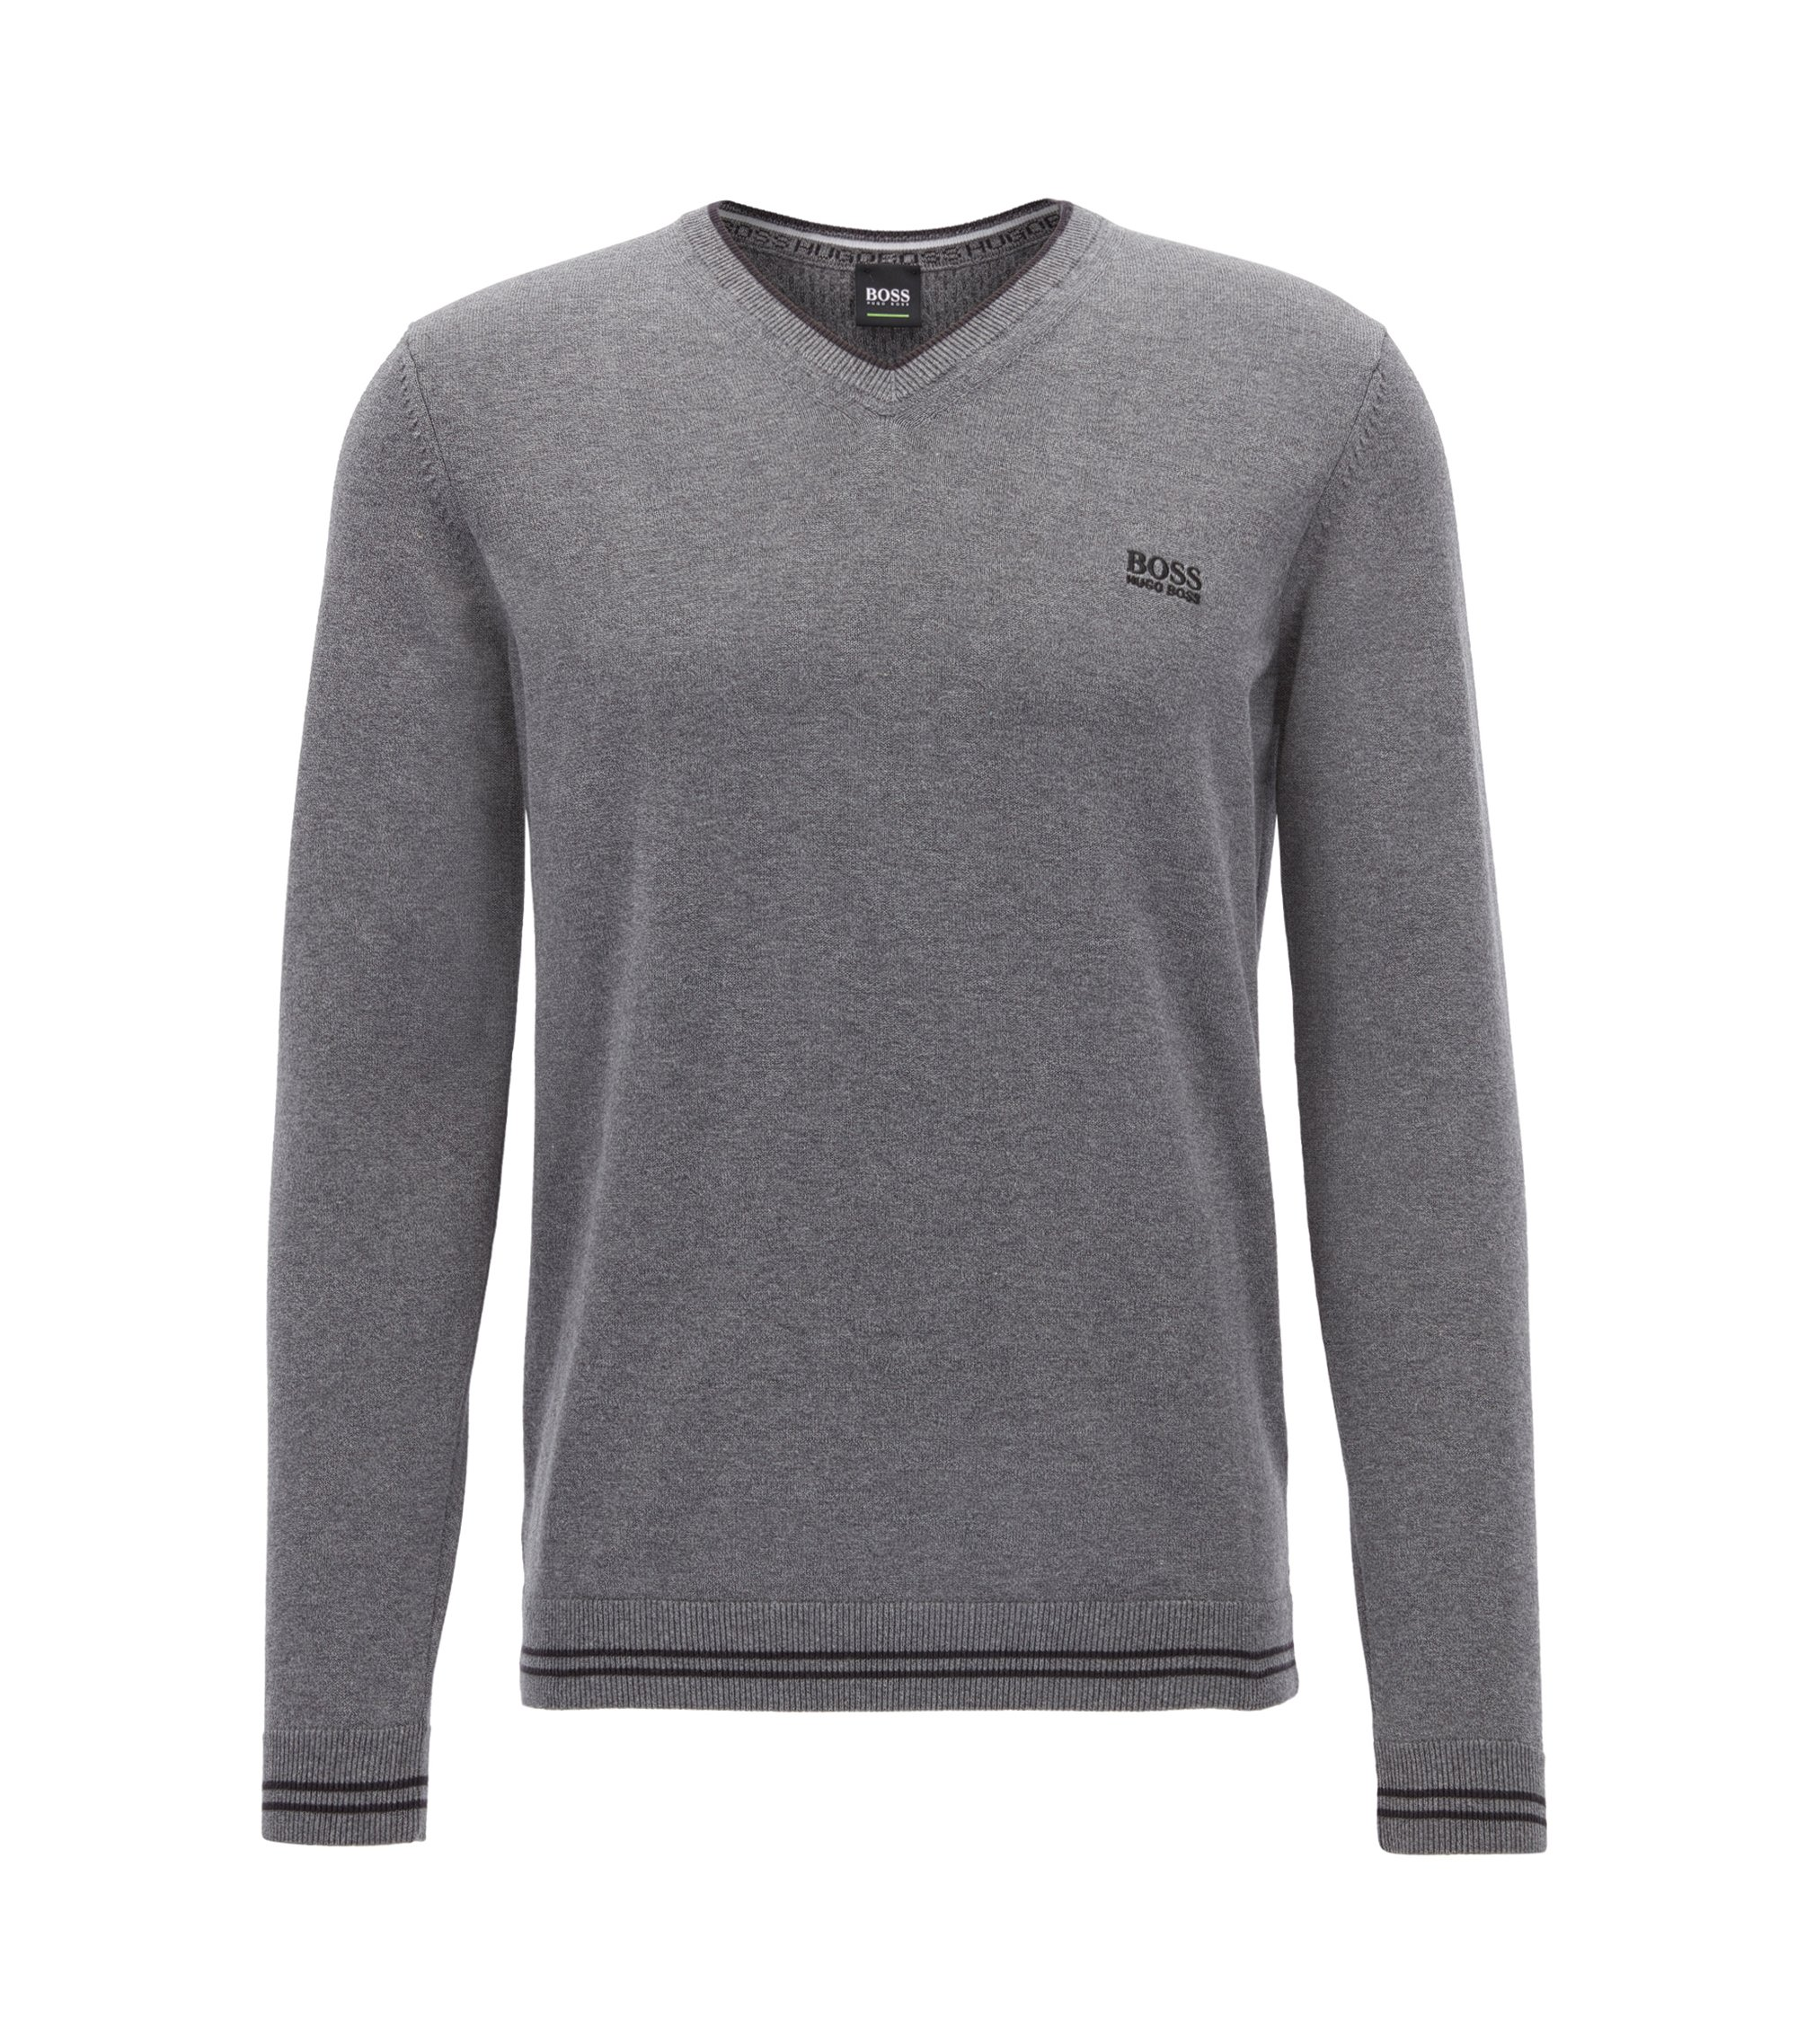 V-neck knitted sweater in a cotton blend, Grey